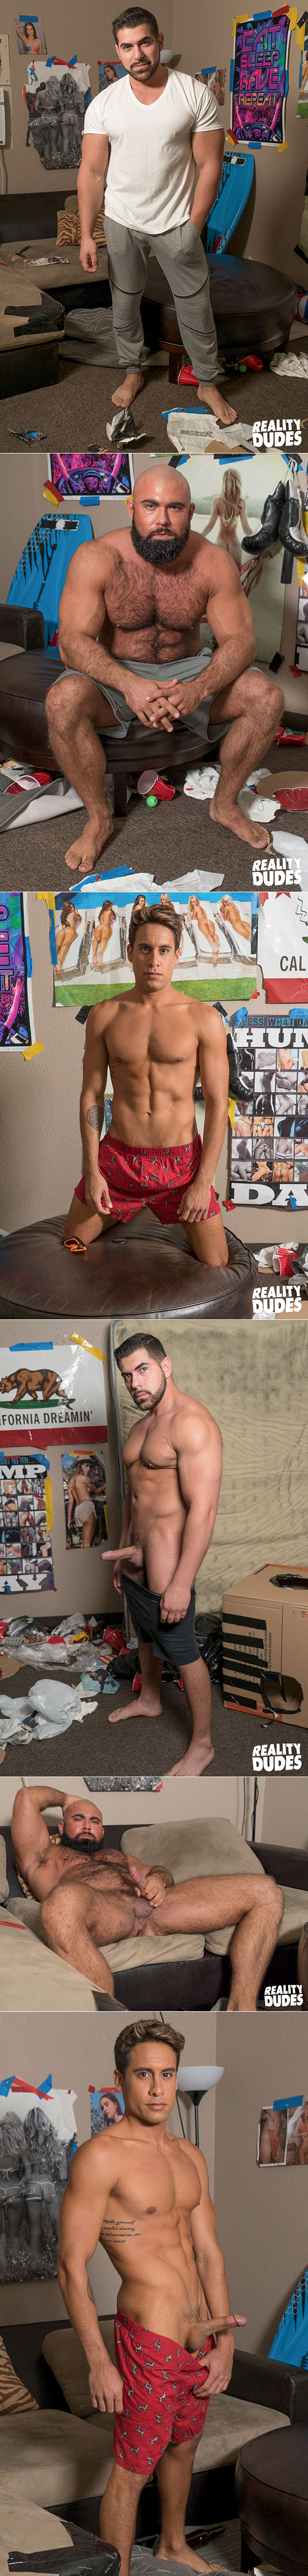 "Reality Dudes: Steven Roman and Damien Stone tag team Titus bareback in ""Playing Games"""